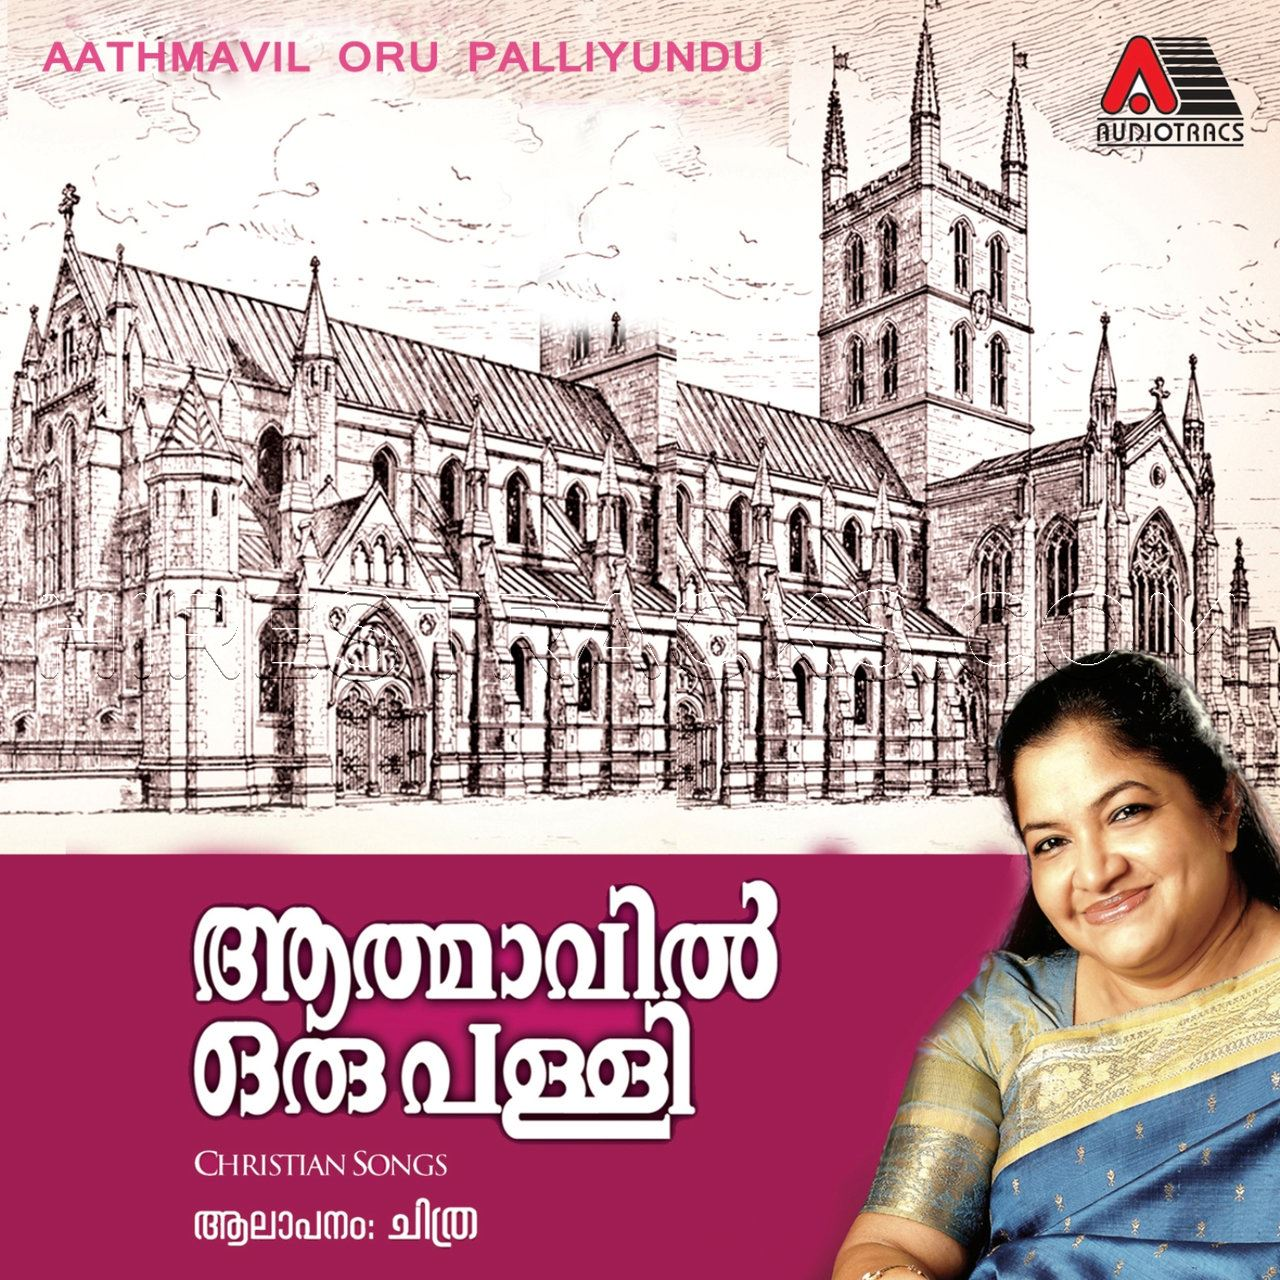 Aathmavil Oru Palliyundu (2014) (Various Artists)